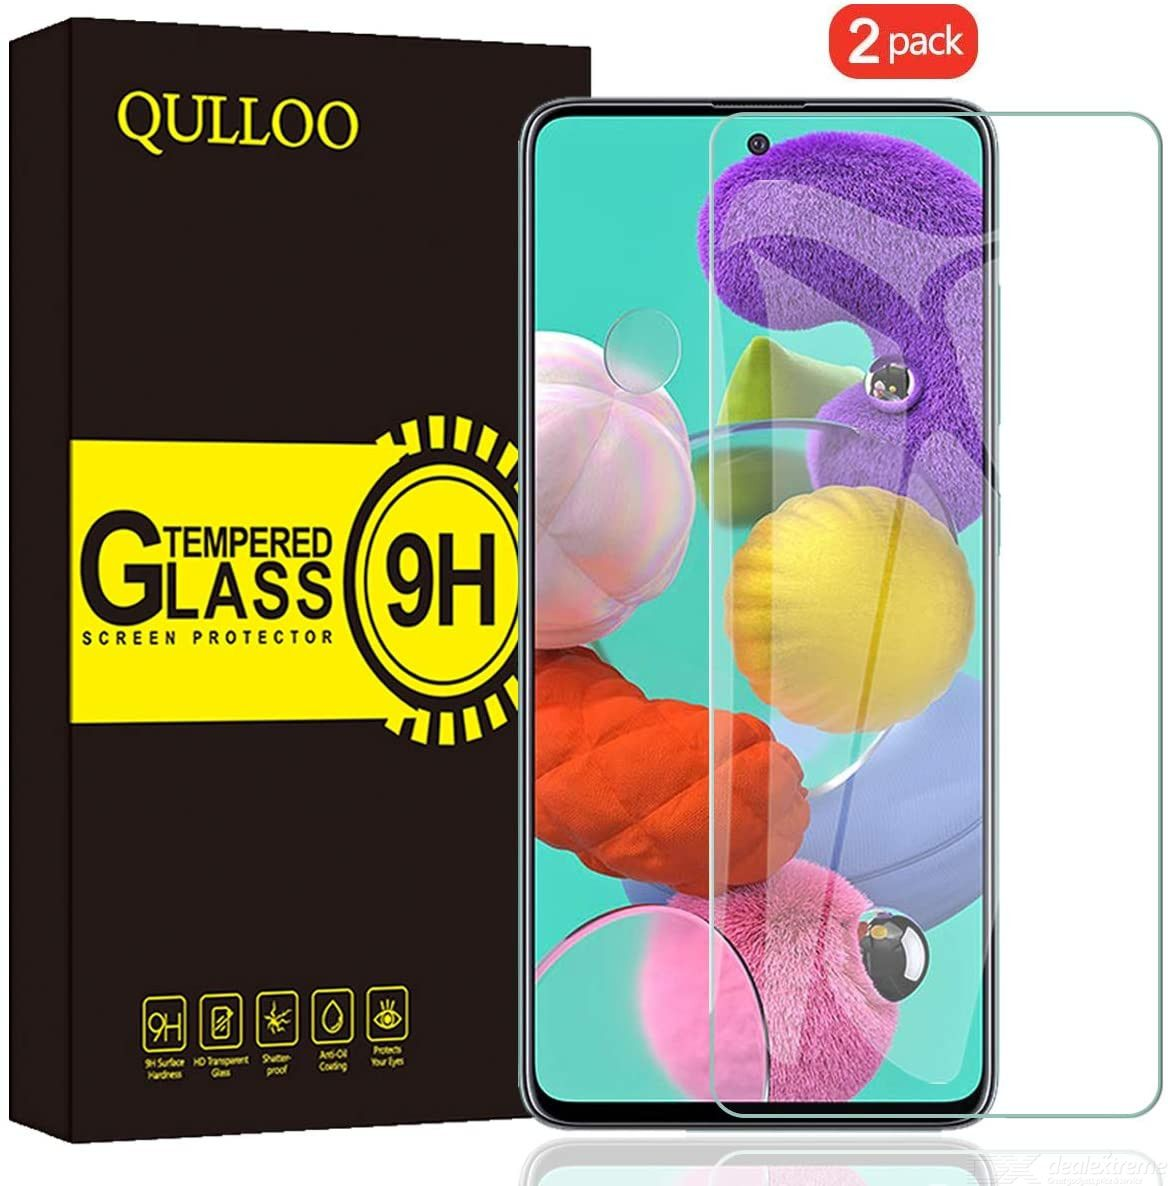 QULLOO Tempered Glass Compatible with Samsung Galaxy A51 / Samsung Galaxy A51 Screen Protector, Screen Protector 2.5D Full Cover